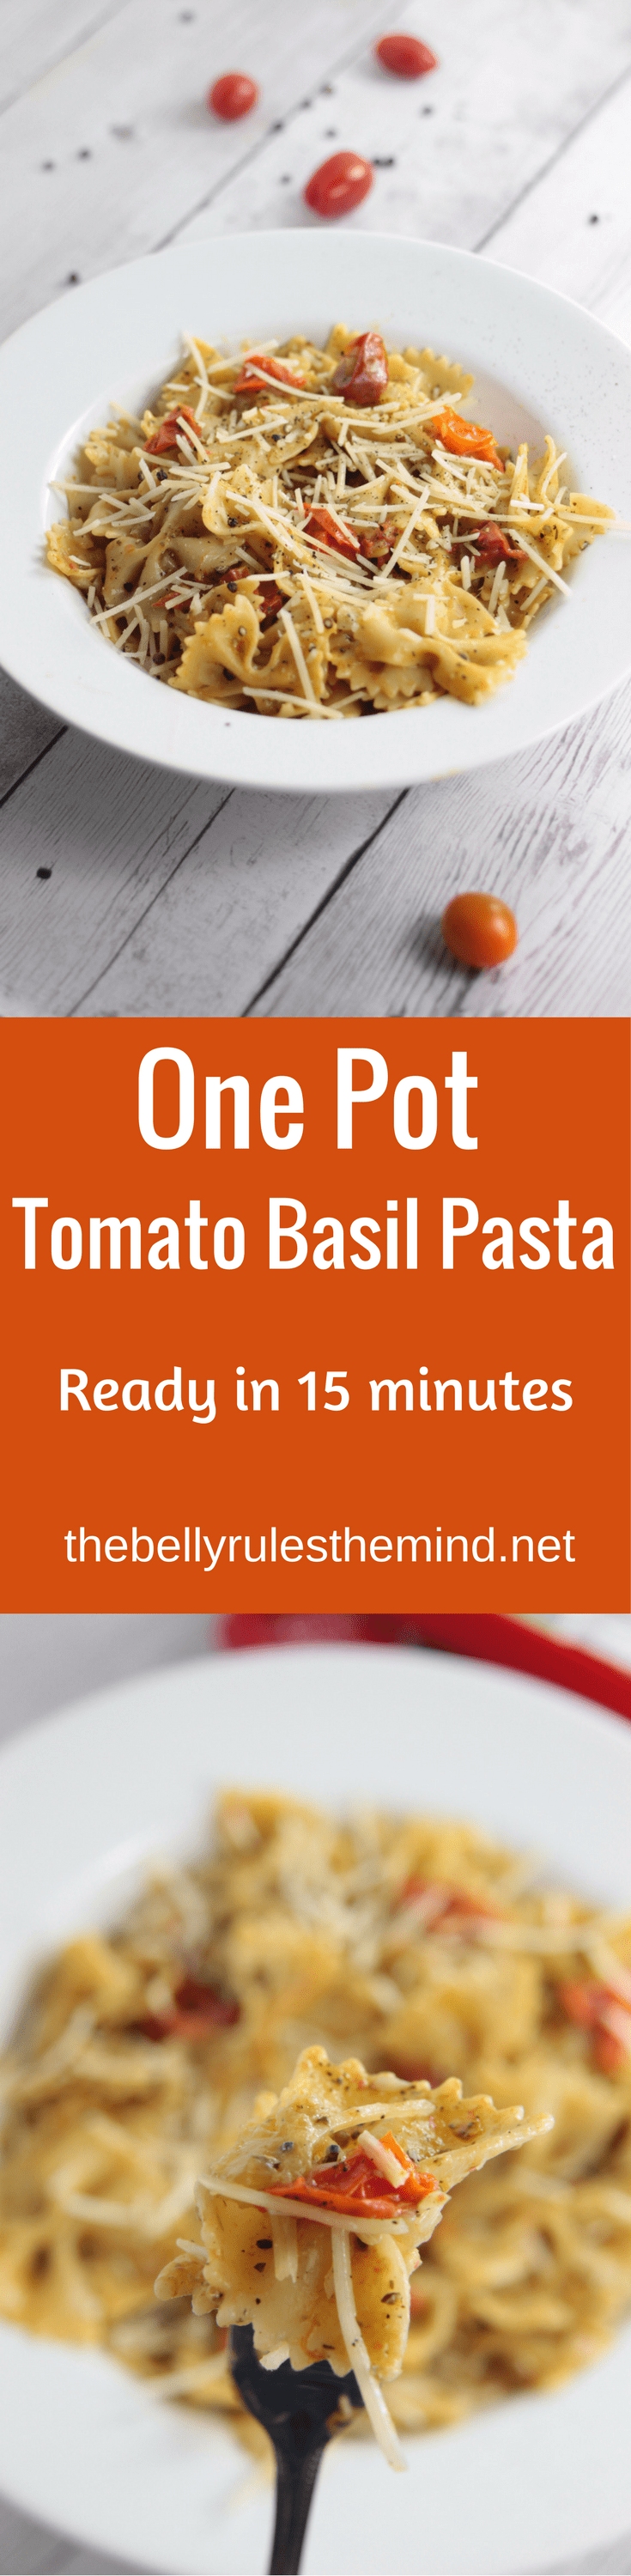 Easiest ever one pot tomato basil pasta , ready in just 15 minutes. Perfect for a quick weeknight dinner|www.thebellyrulesthemind.net @bellyrulesdmind